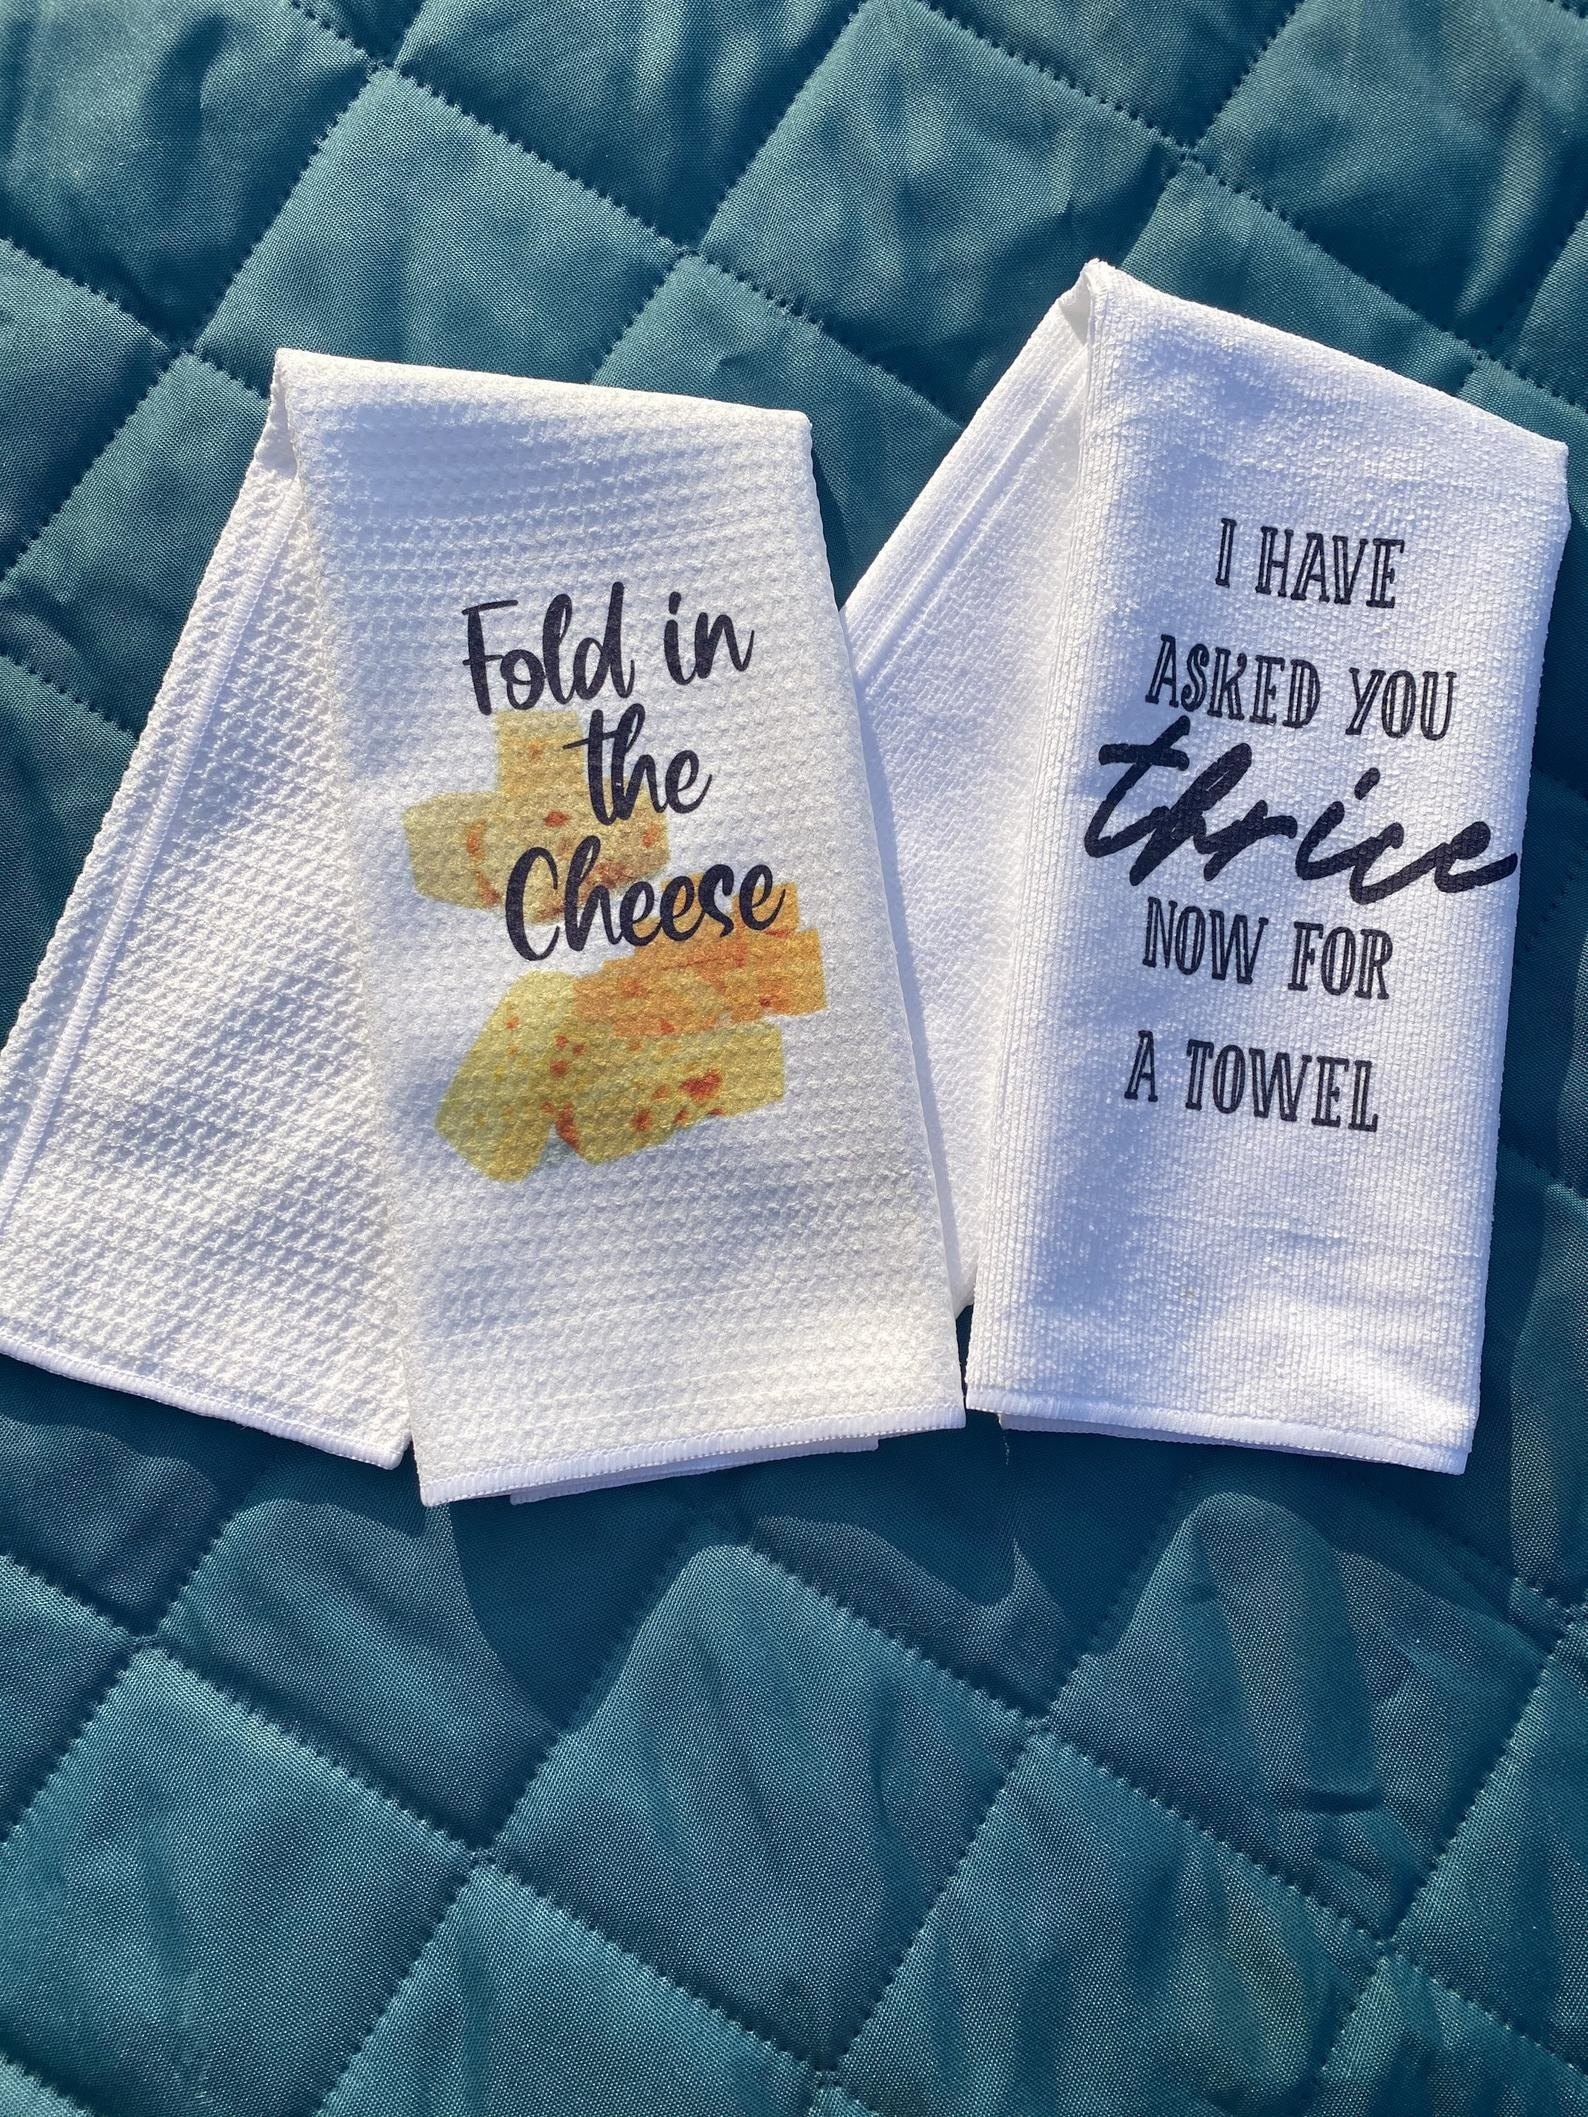 "One towel that reads ""Fold the Cheese"" with cheese graphics, and another towel that reads ""I HAVE ASKED YOU THRICE NOW FOR A TOWEL"""